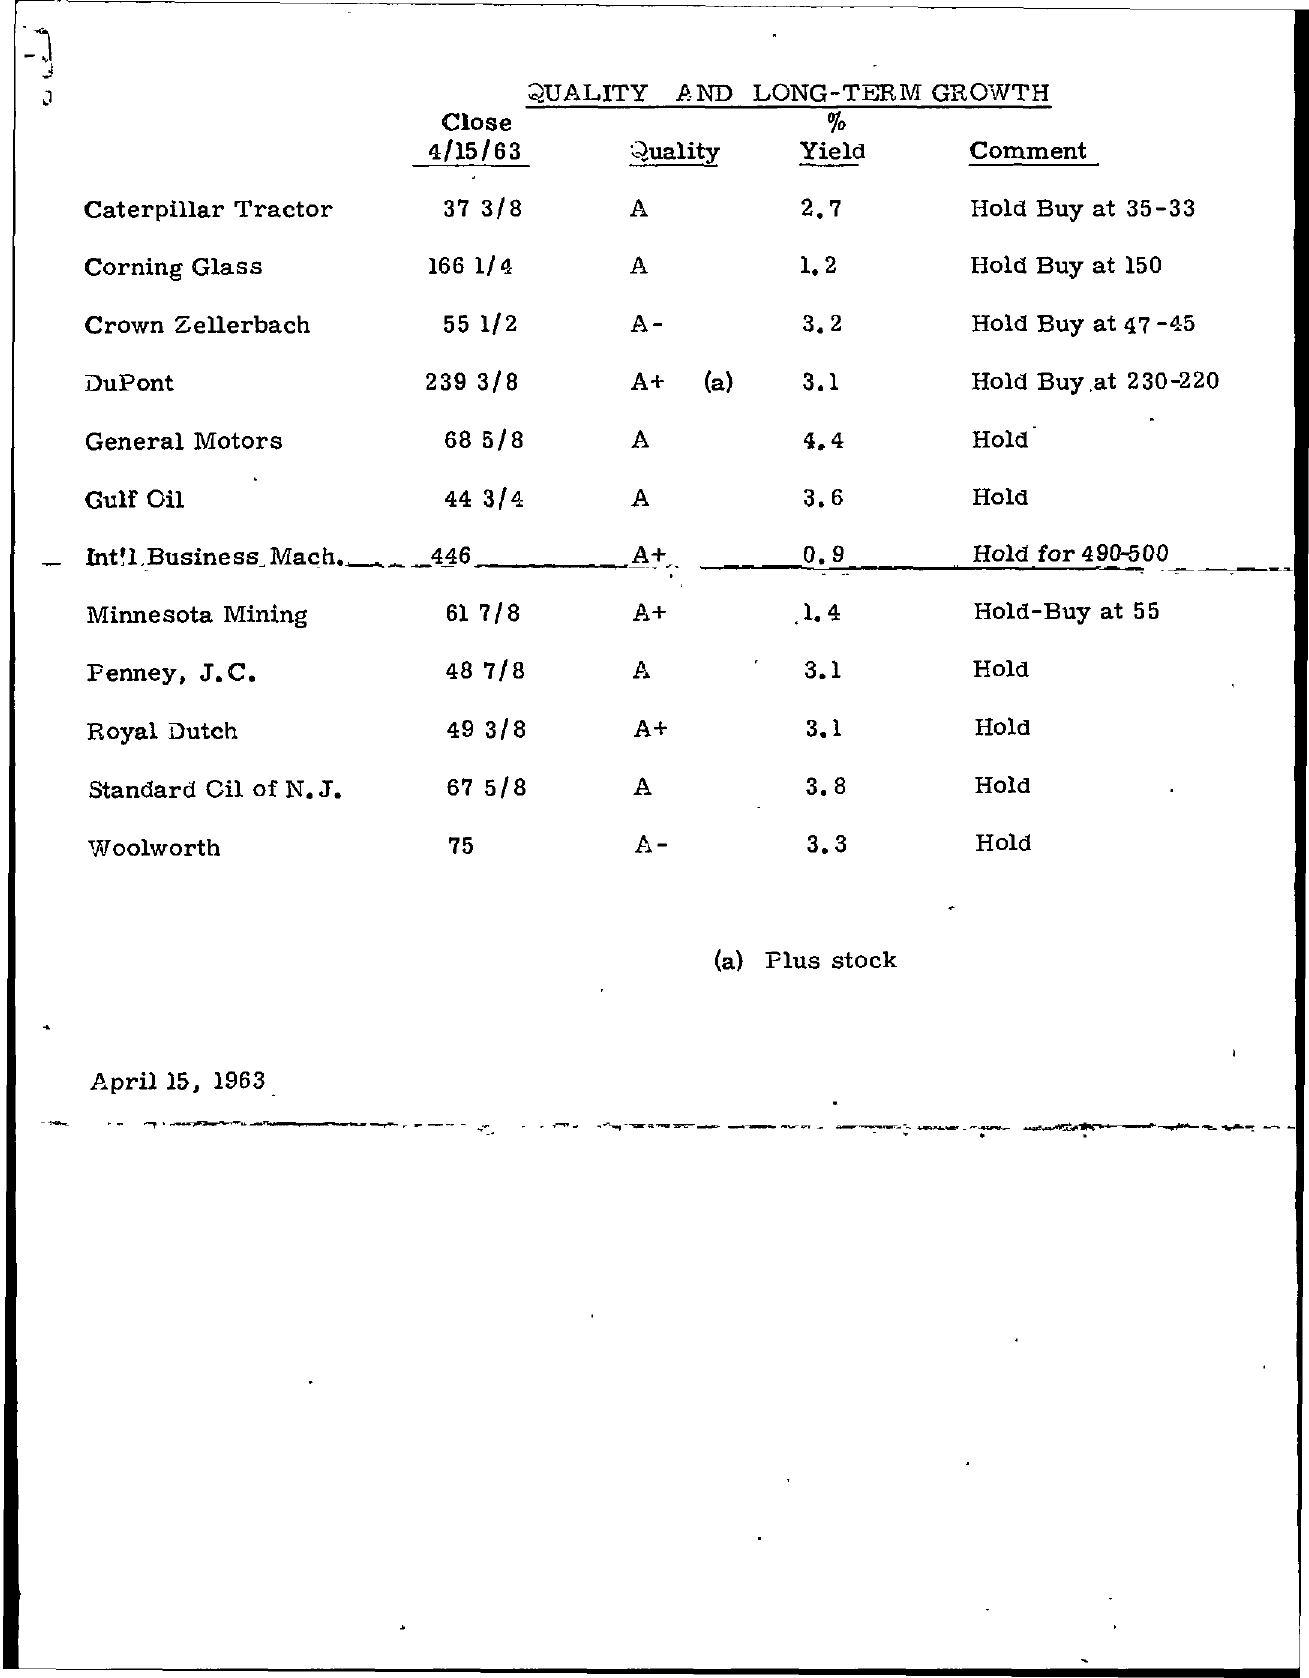 Tabell's Market Letter - April 15, 1963 page 2